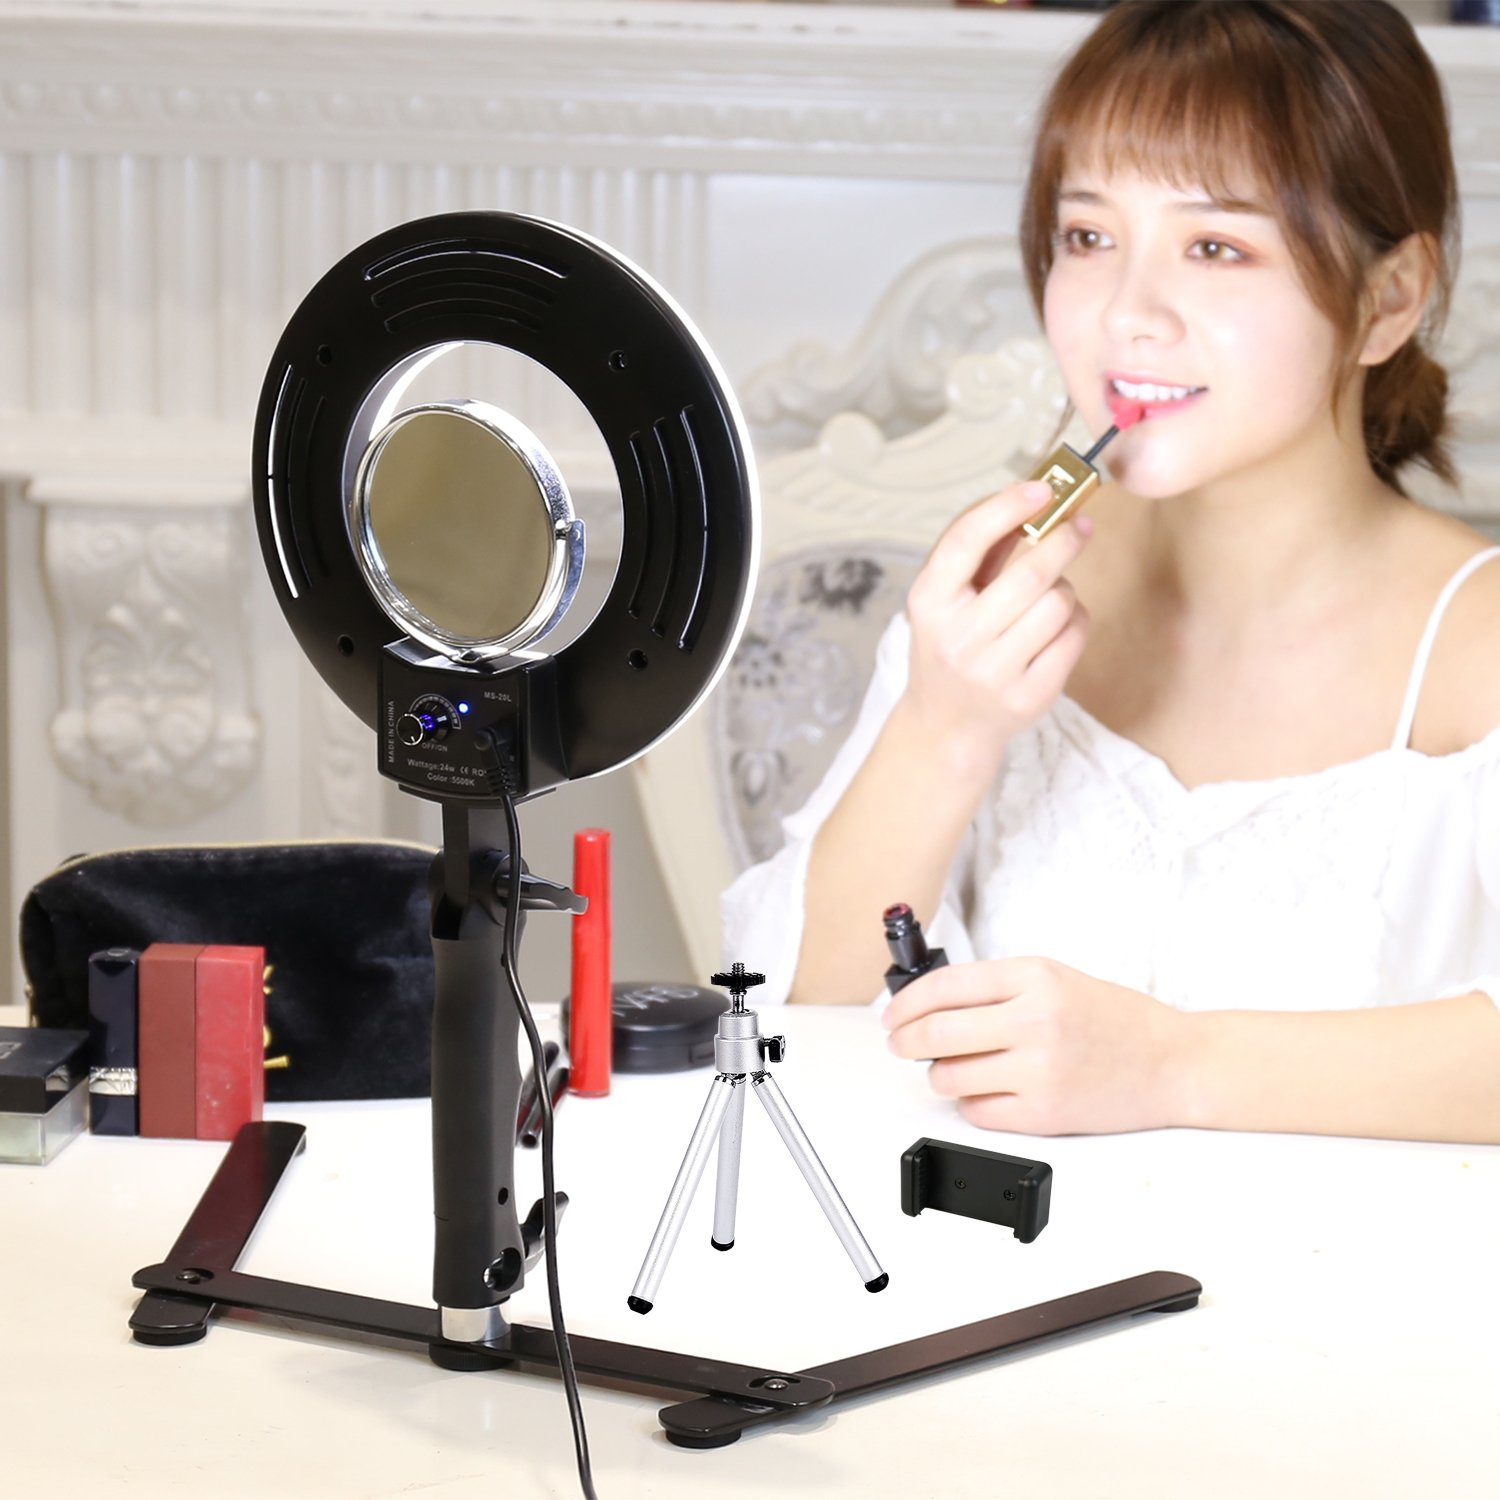 Desk LED Selfie Beauty Ring Light with Flexible Gooseneck Cell Phone Clamp+3' Mirror for Photography Table iPhone Live Streaming or Makeup Portable 8-inch Dimmable 5500K O Circular Small Ring Lamp Konseen Ring Light-8